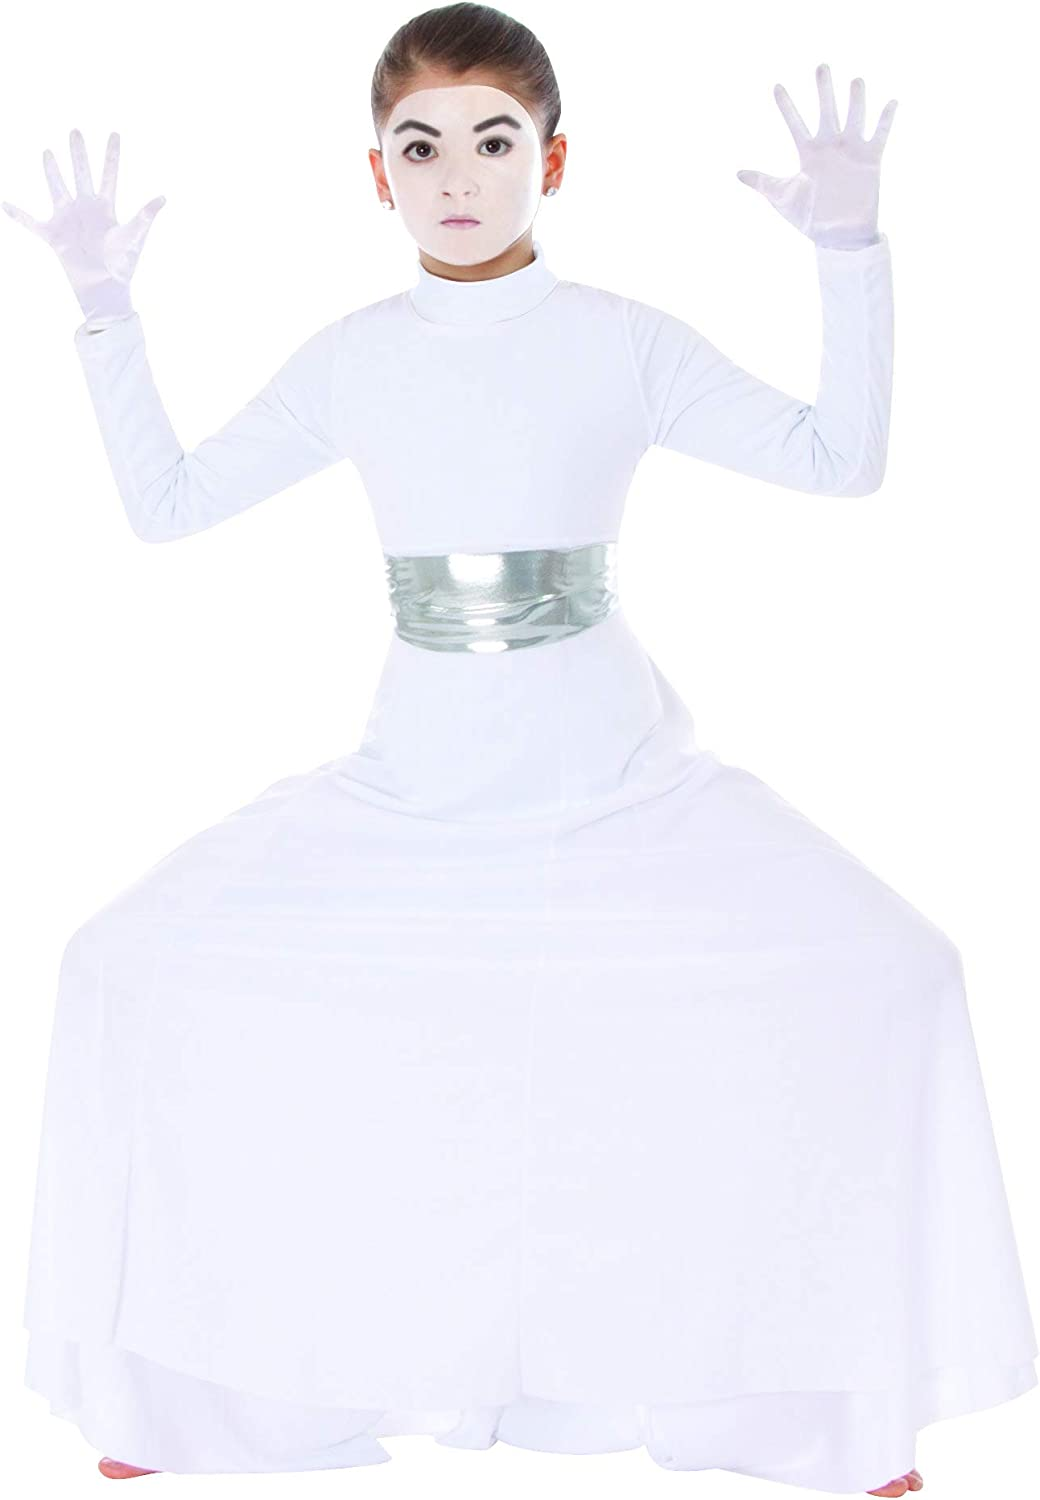 Popular shop is the lowest price challenge Body Wrappers Large special price Praise Dance Palazzo 0565 Pants